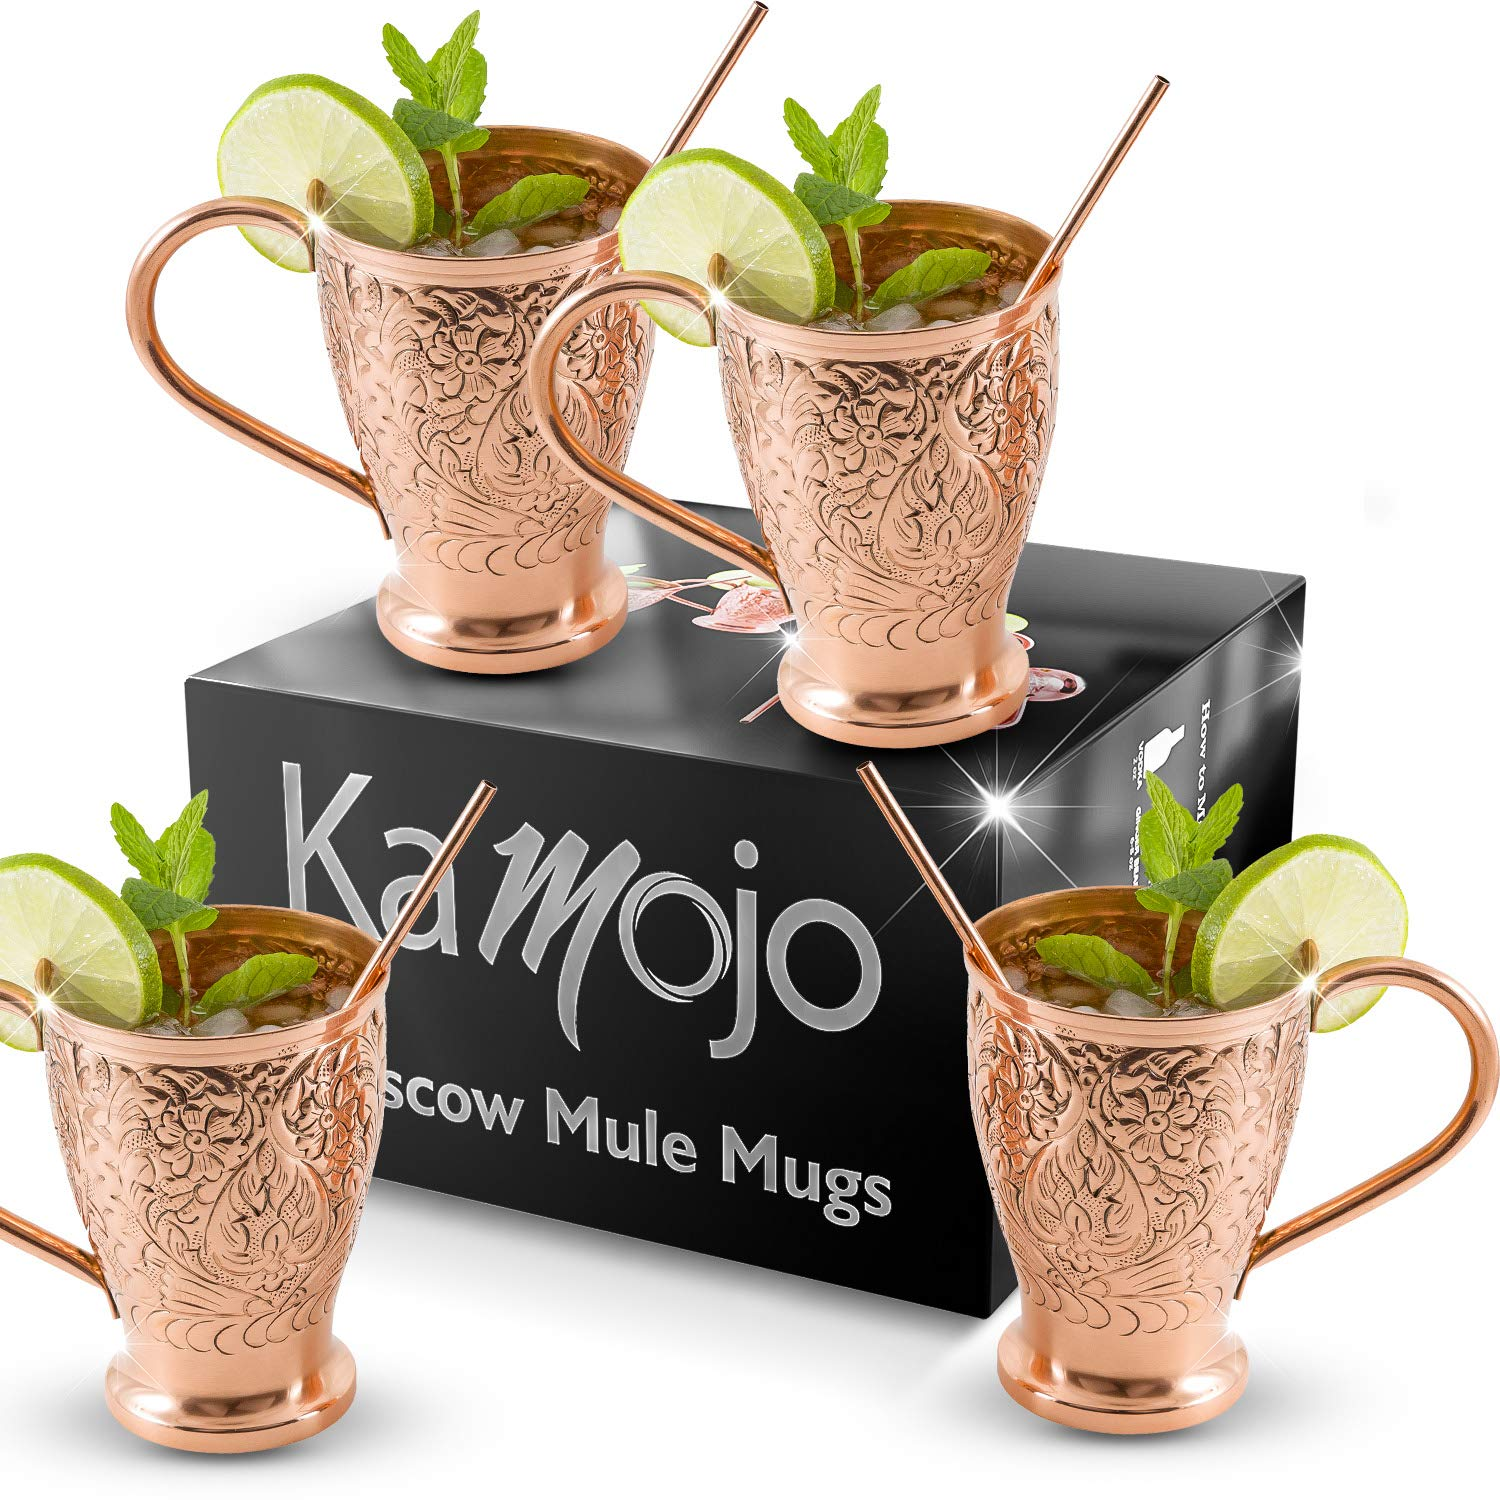 Moscow Mule Pure Copper Mugs - Stunning Embossed Gift Set of 4 Copper Cups - Bonus Copper Straws for Cocktails & Russian Mules - Kamojo Exclusive (Gift set of 4)